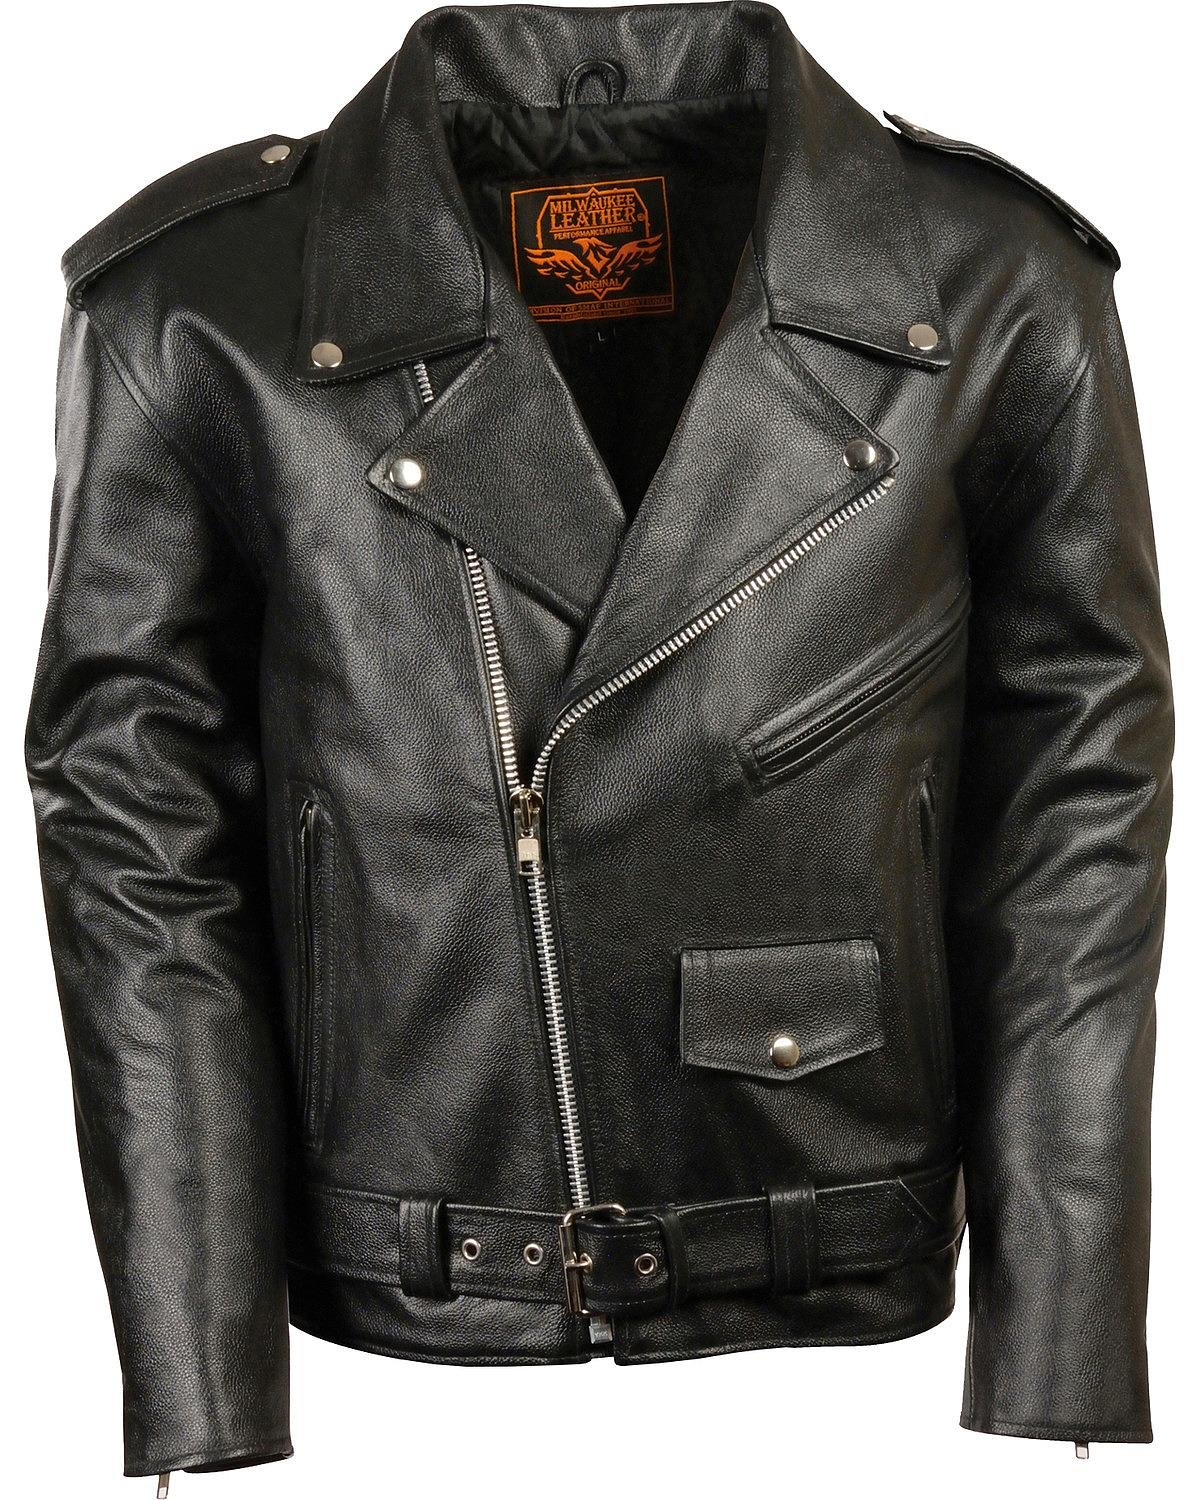 Milwaukee Leather Men's Classic Police Style M/C Jacket Big 5X Black 5X 2174794